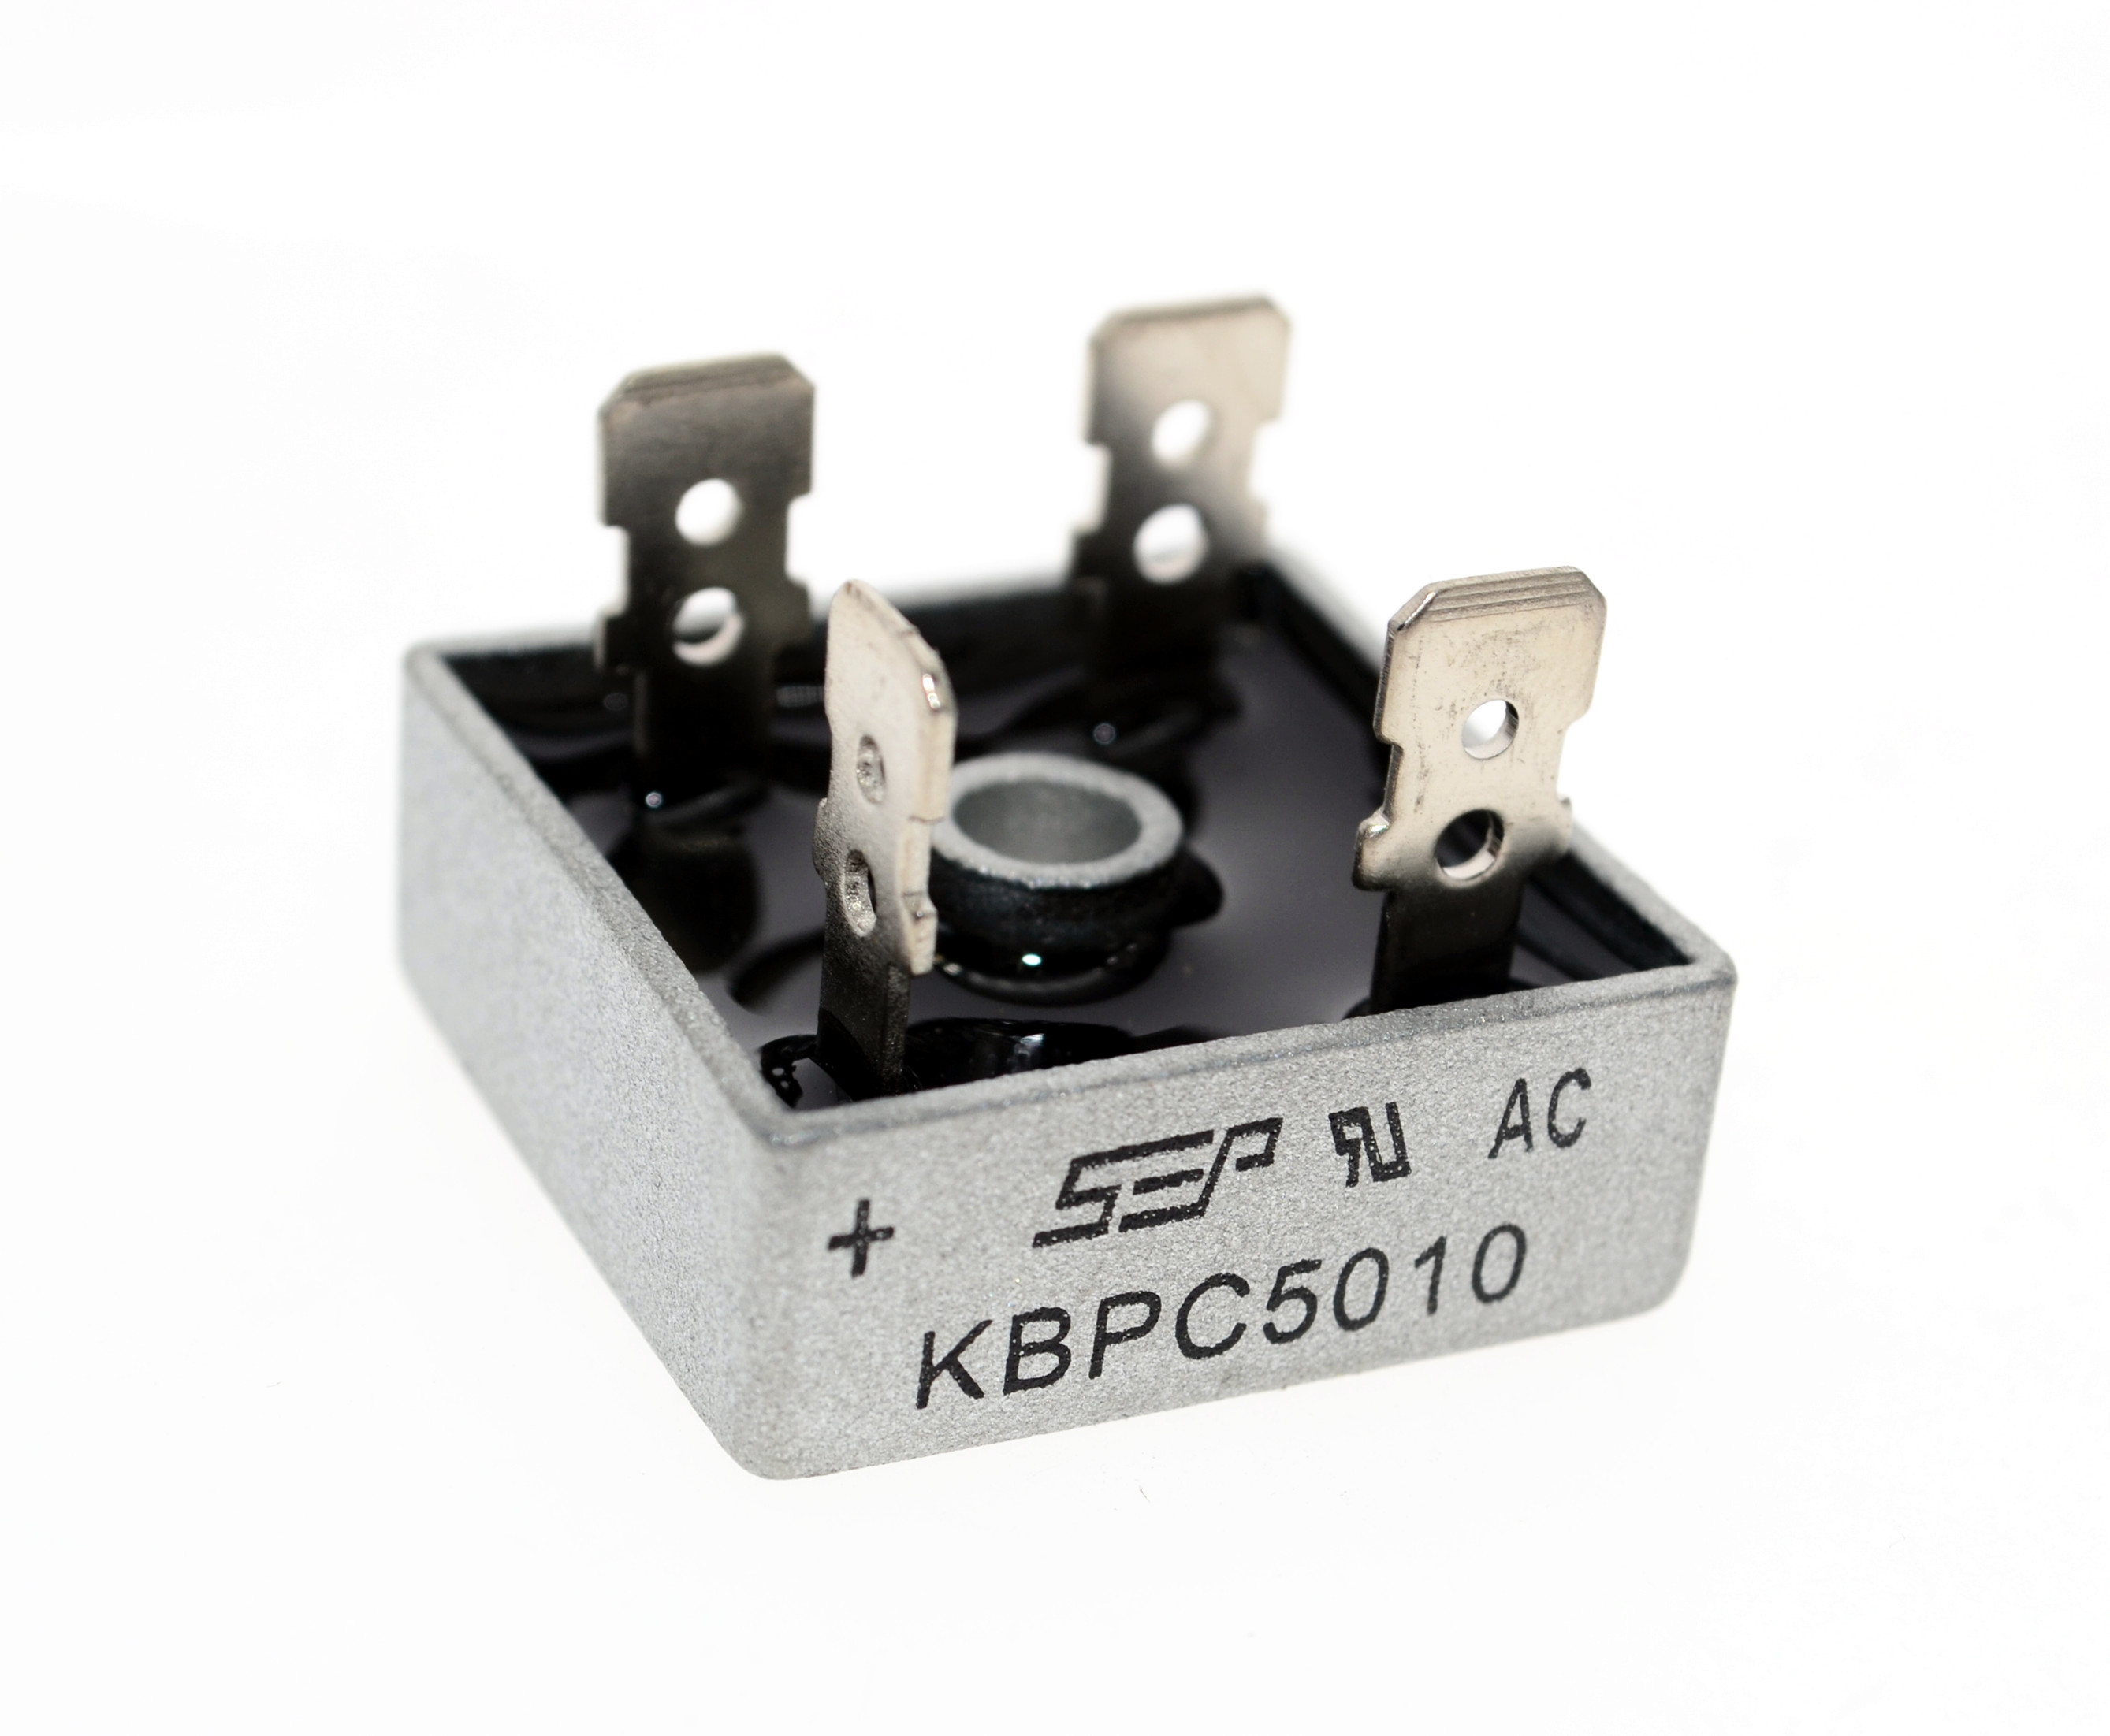 Free Shipping 10pcs KBPC5010 Fangqiao 50A1000V SEP Genuine Single-phase Bridge Rectifier Quality Assurance